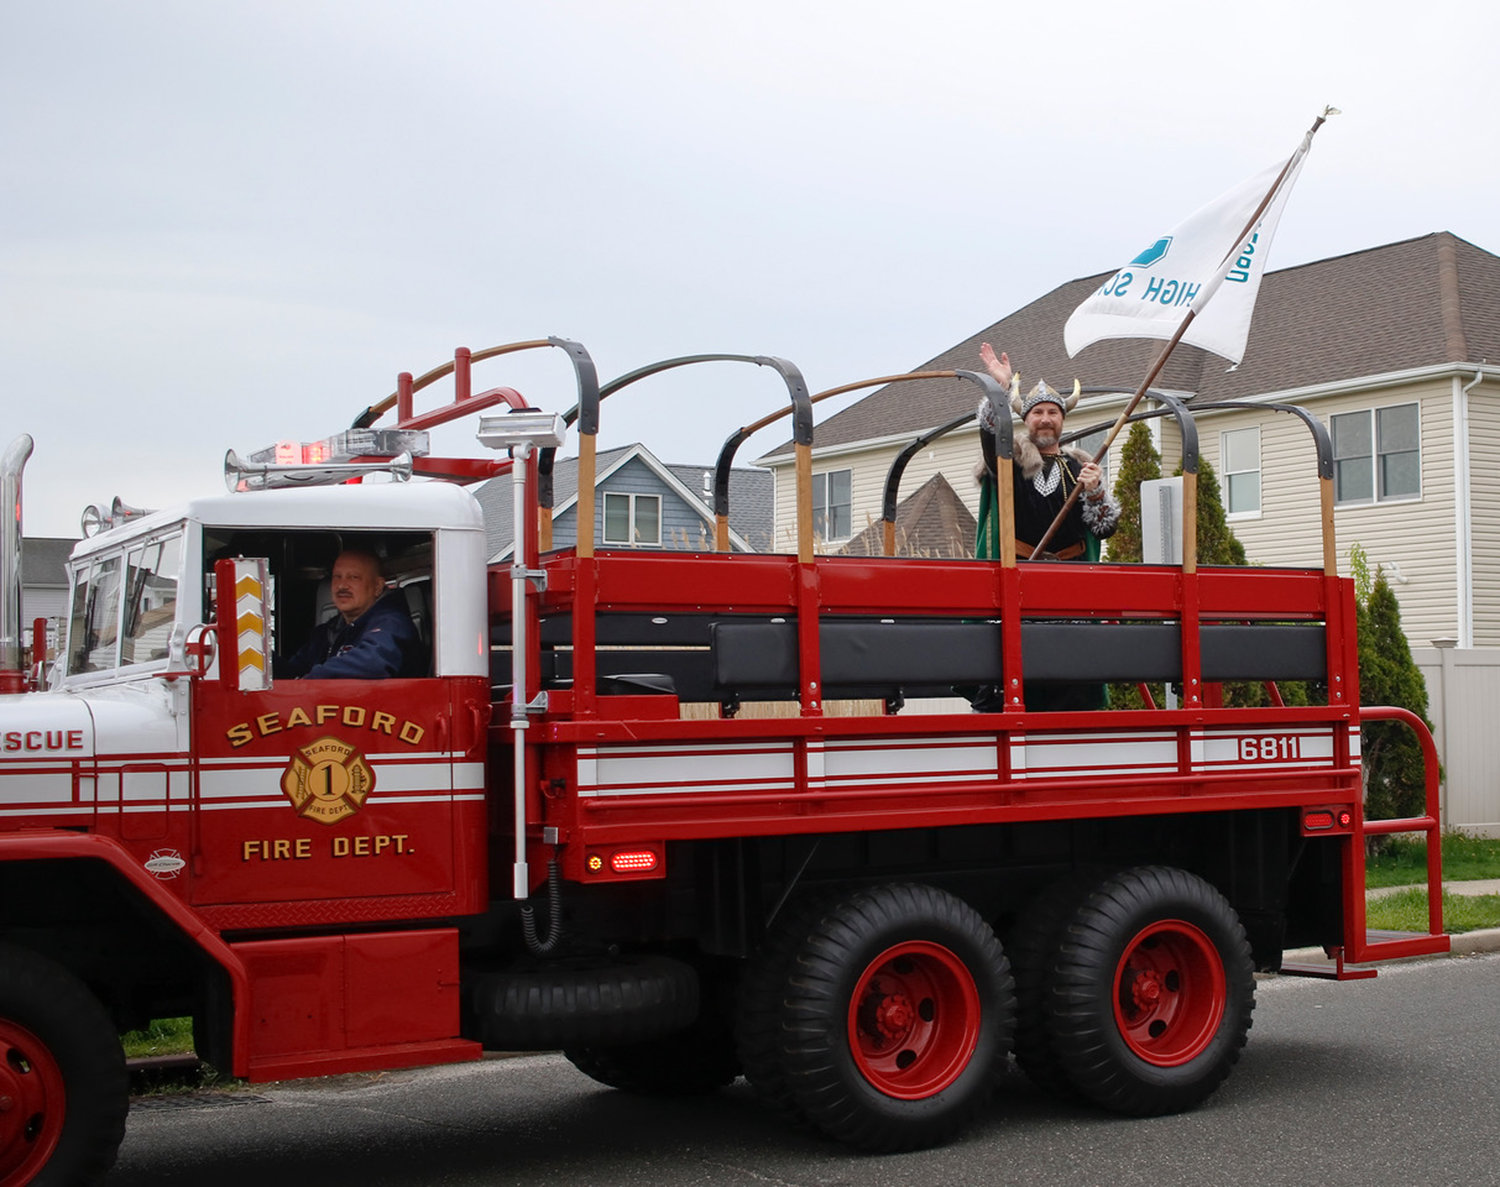 The Seaford Fire Department took part as well, with sirens, lights . . . and Vikings.